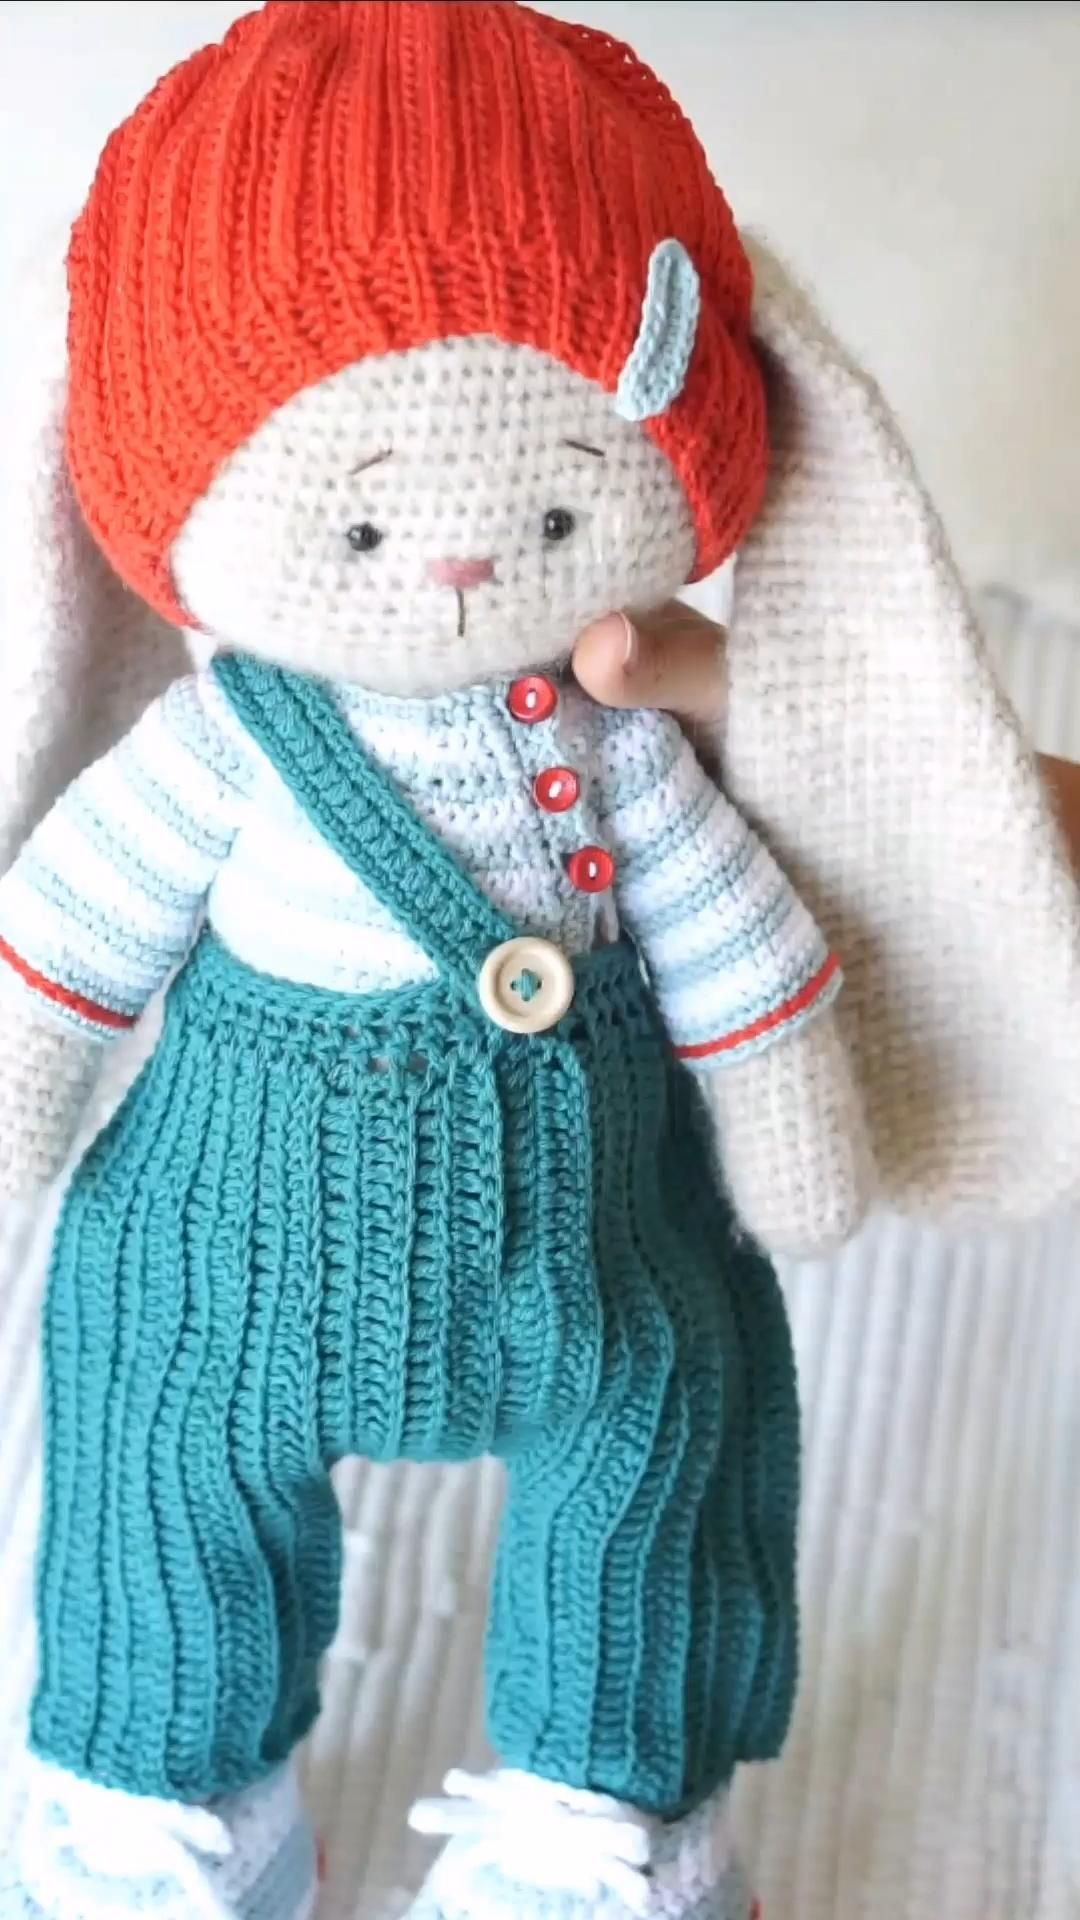 Crochet Doll Clothes Pattern - Outfit Junior #crochet #pattern #doll #clothes #bunny #rabbit #diy